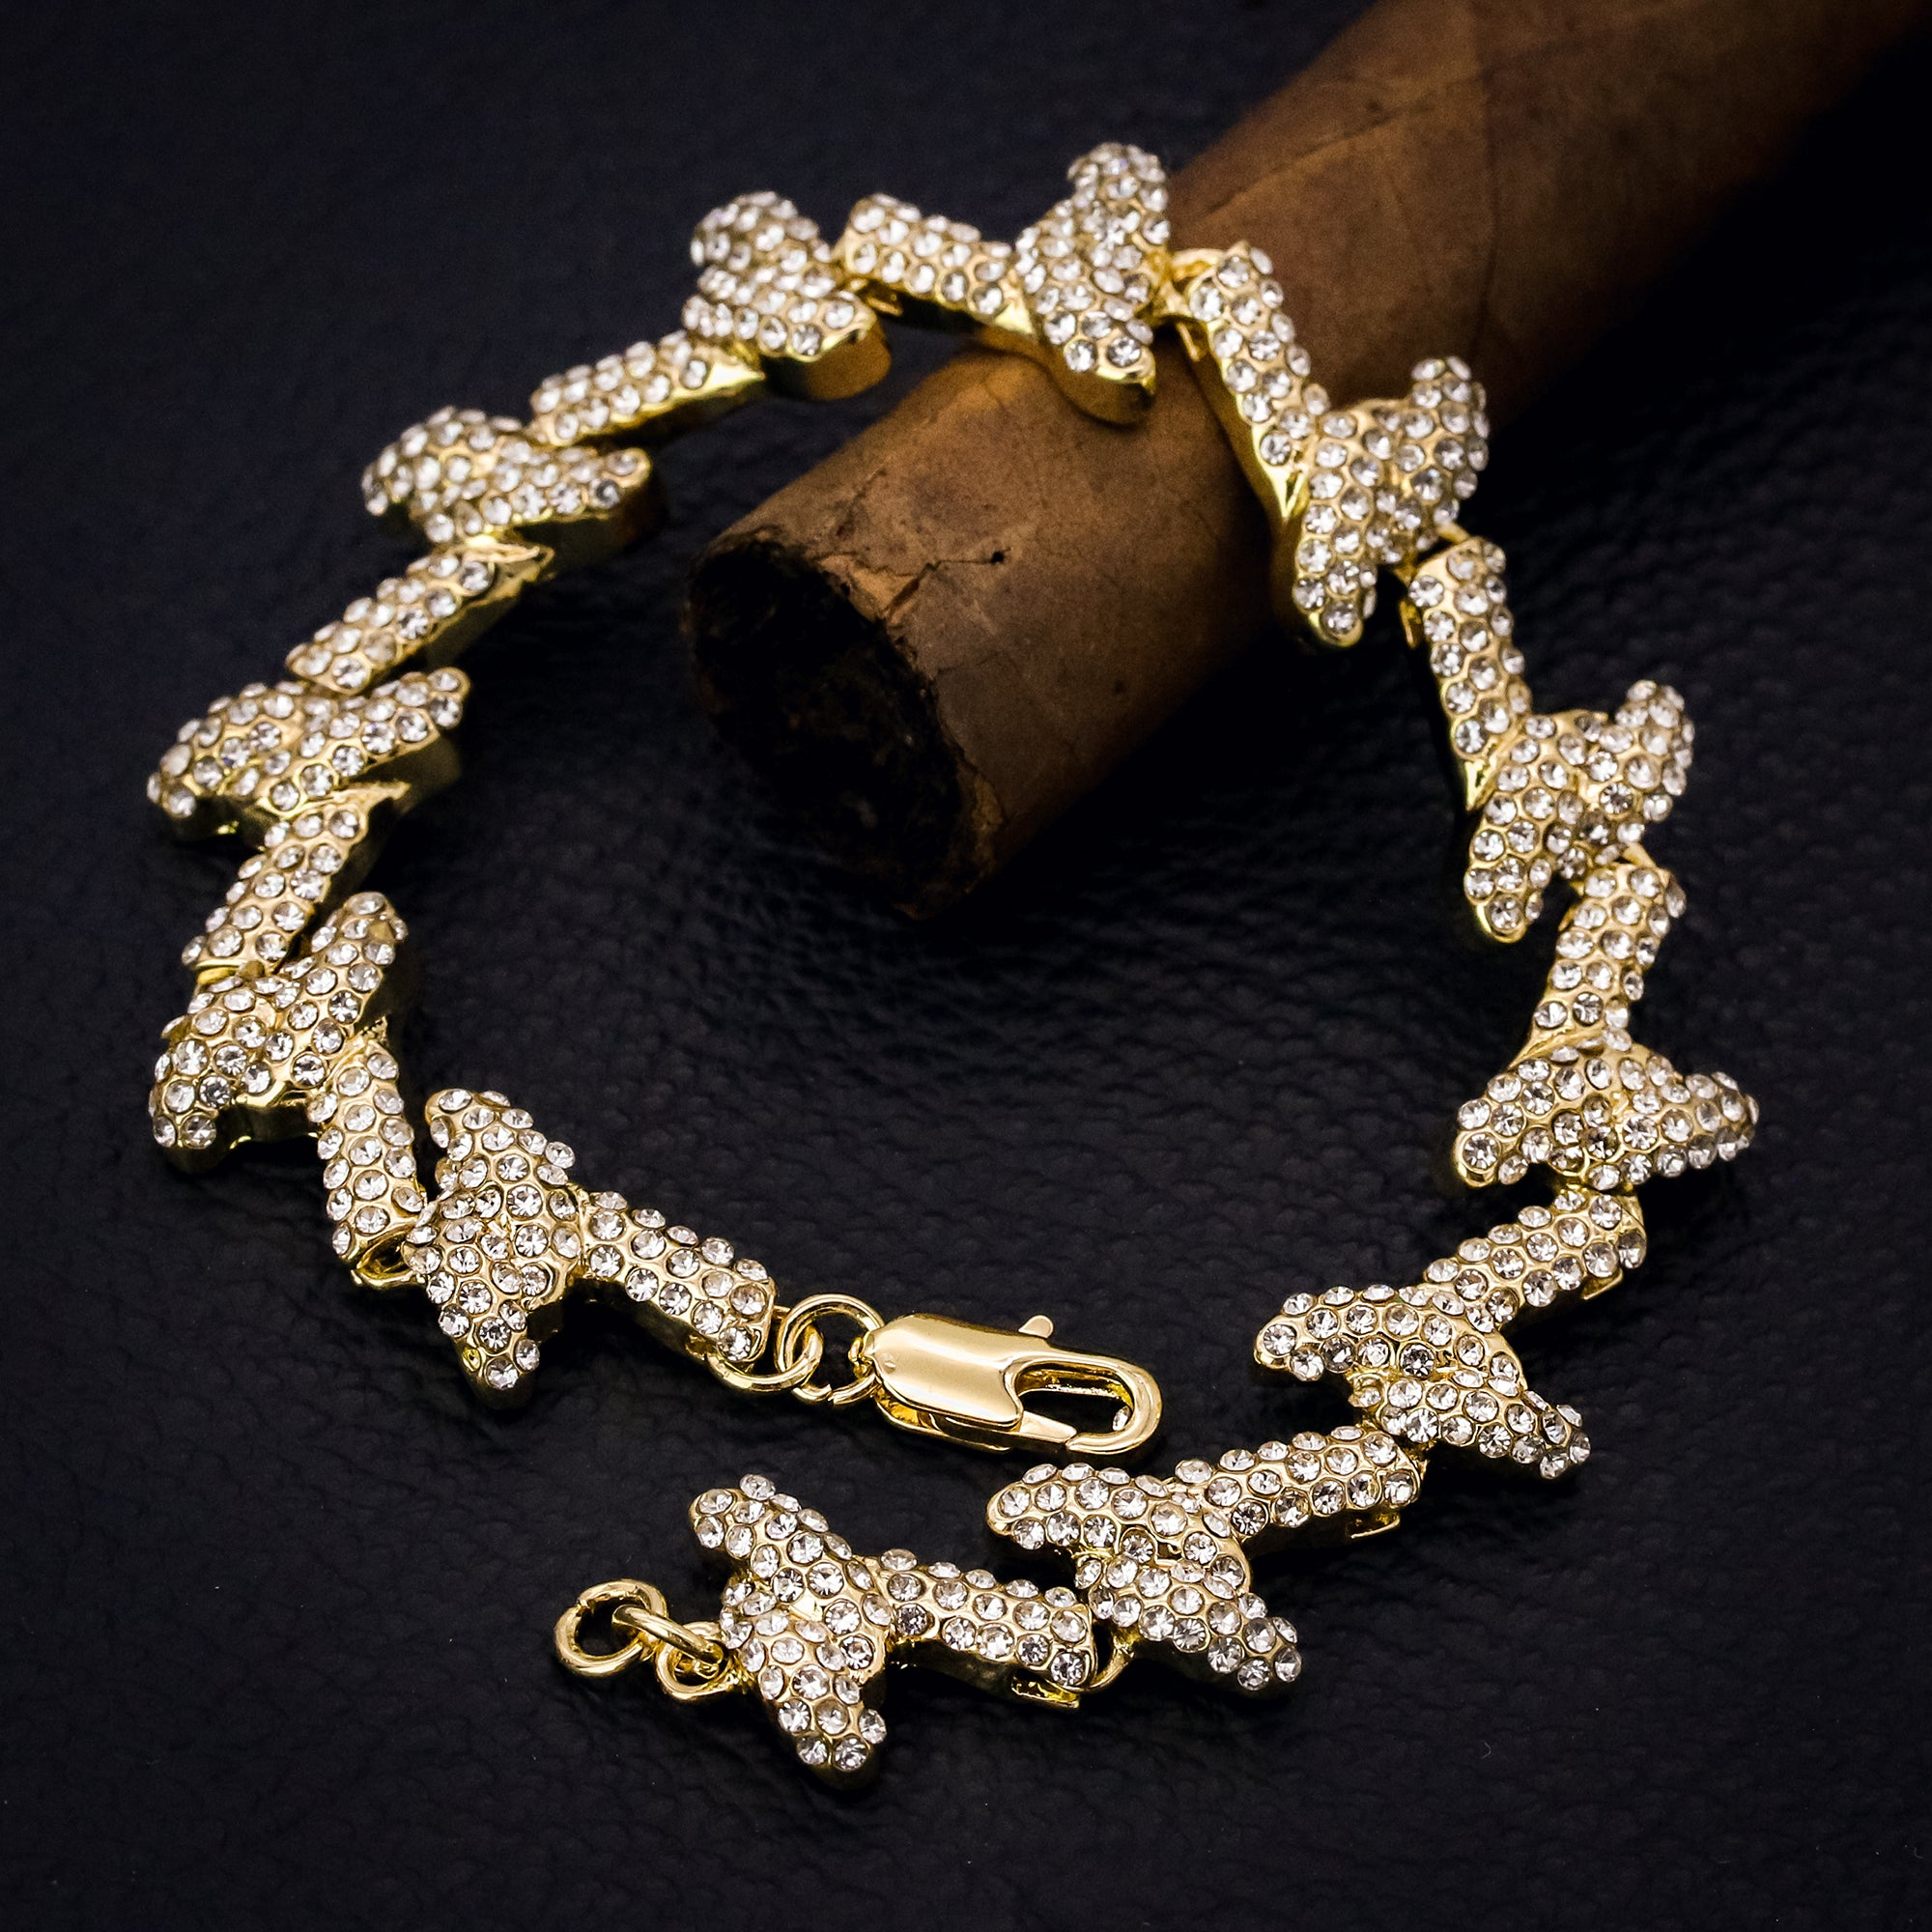 Barbed Wire Bracelet Spiky Iced 14k Gold Plated 15 mm 9""